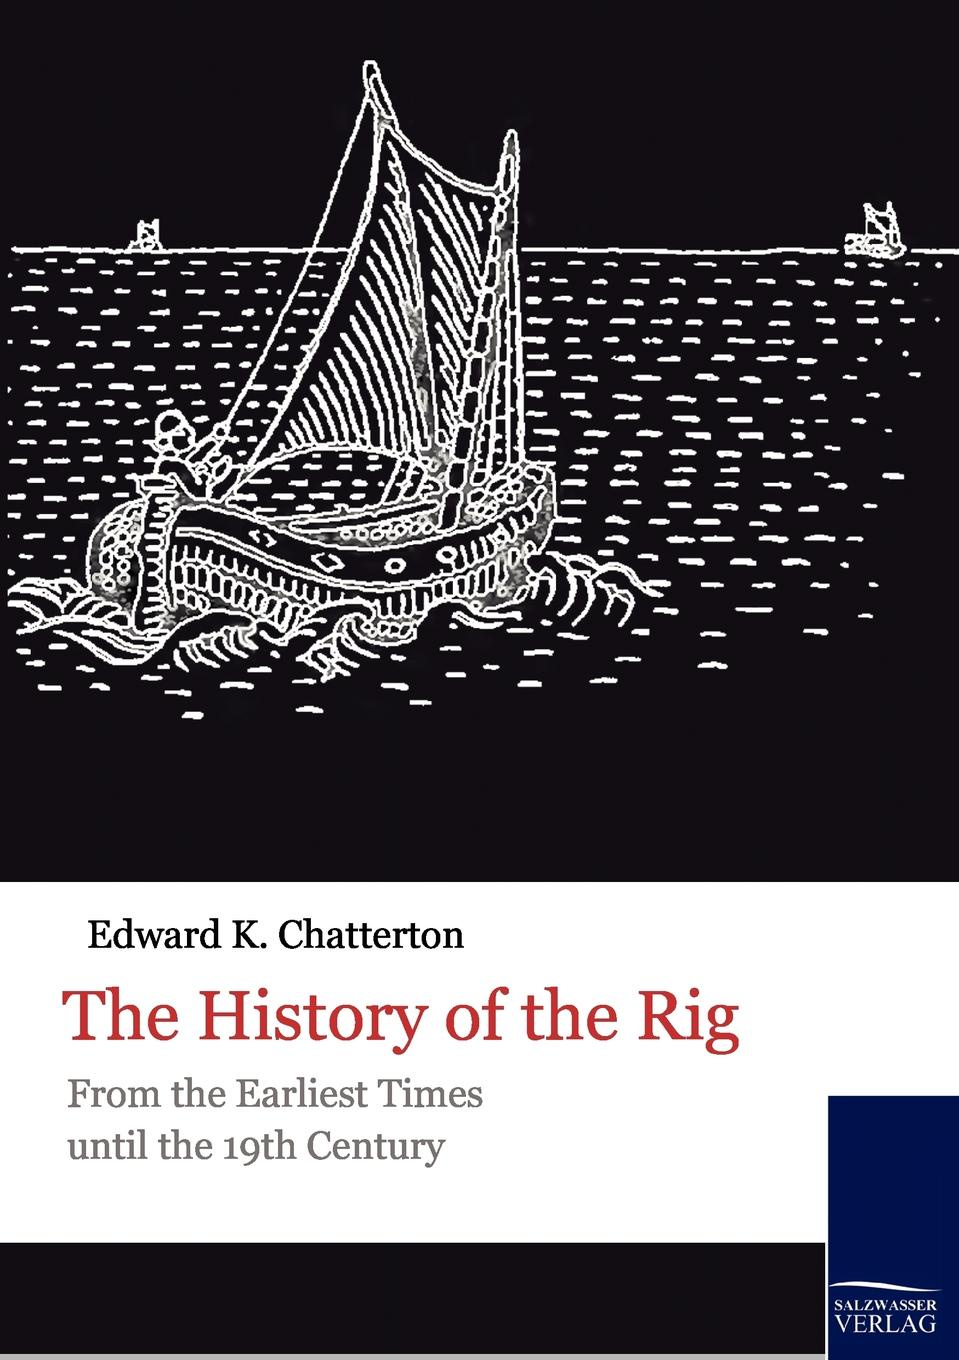 Edward K. Chatterton The History of the Rig